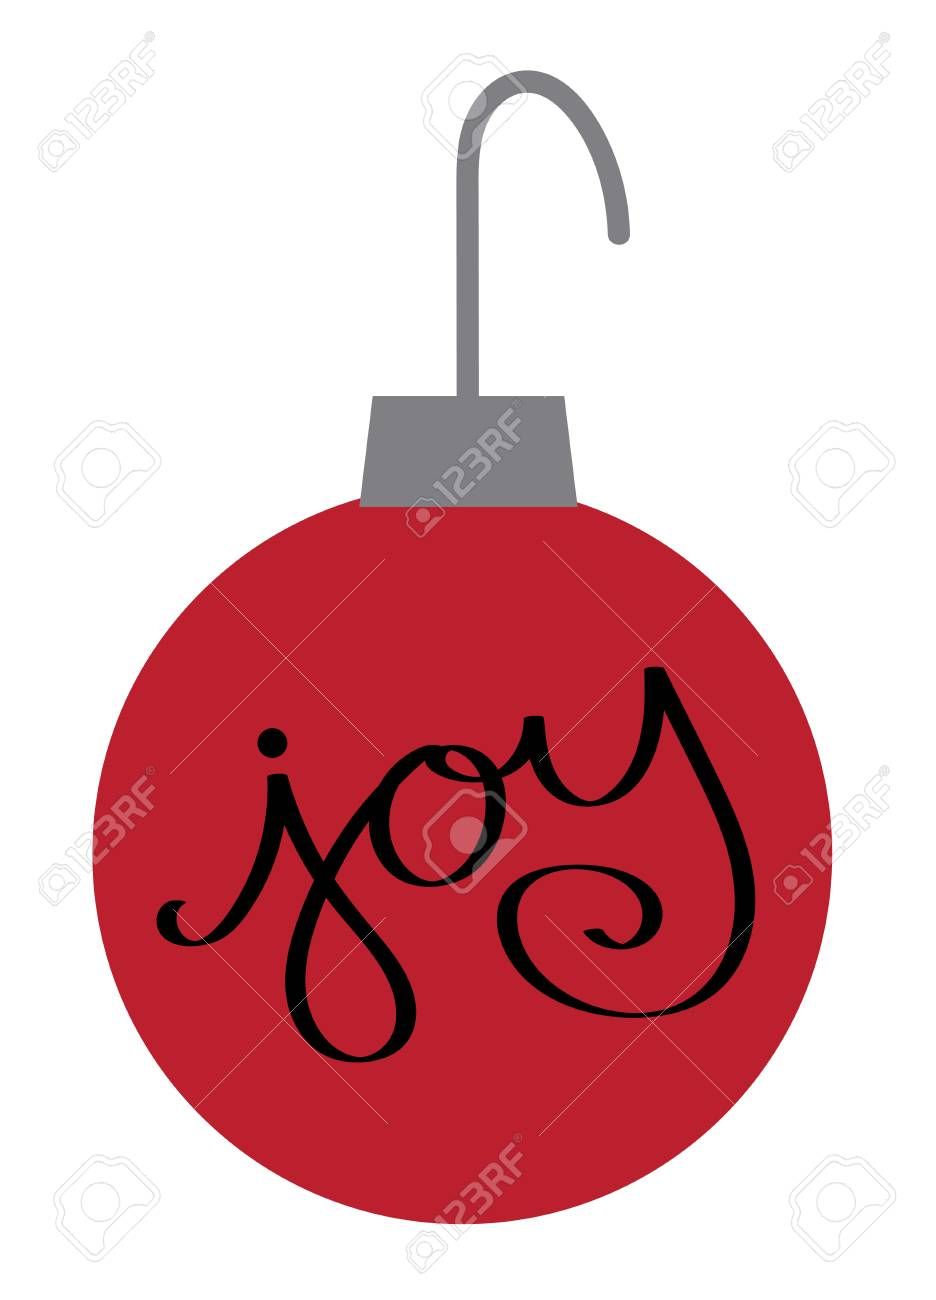 Christmas Joy Ornament Illustration Royalty Free Cliparts Vectors And Stock Illustration Image 92169367